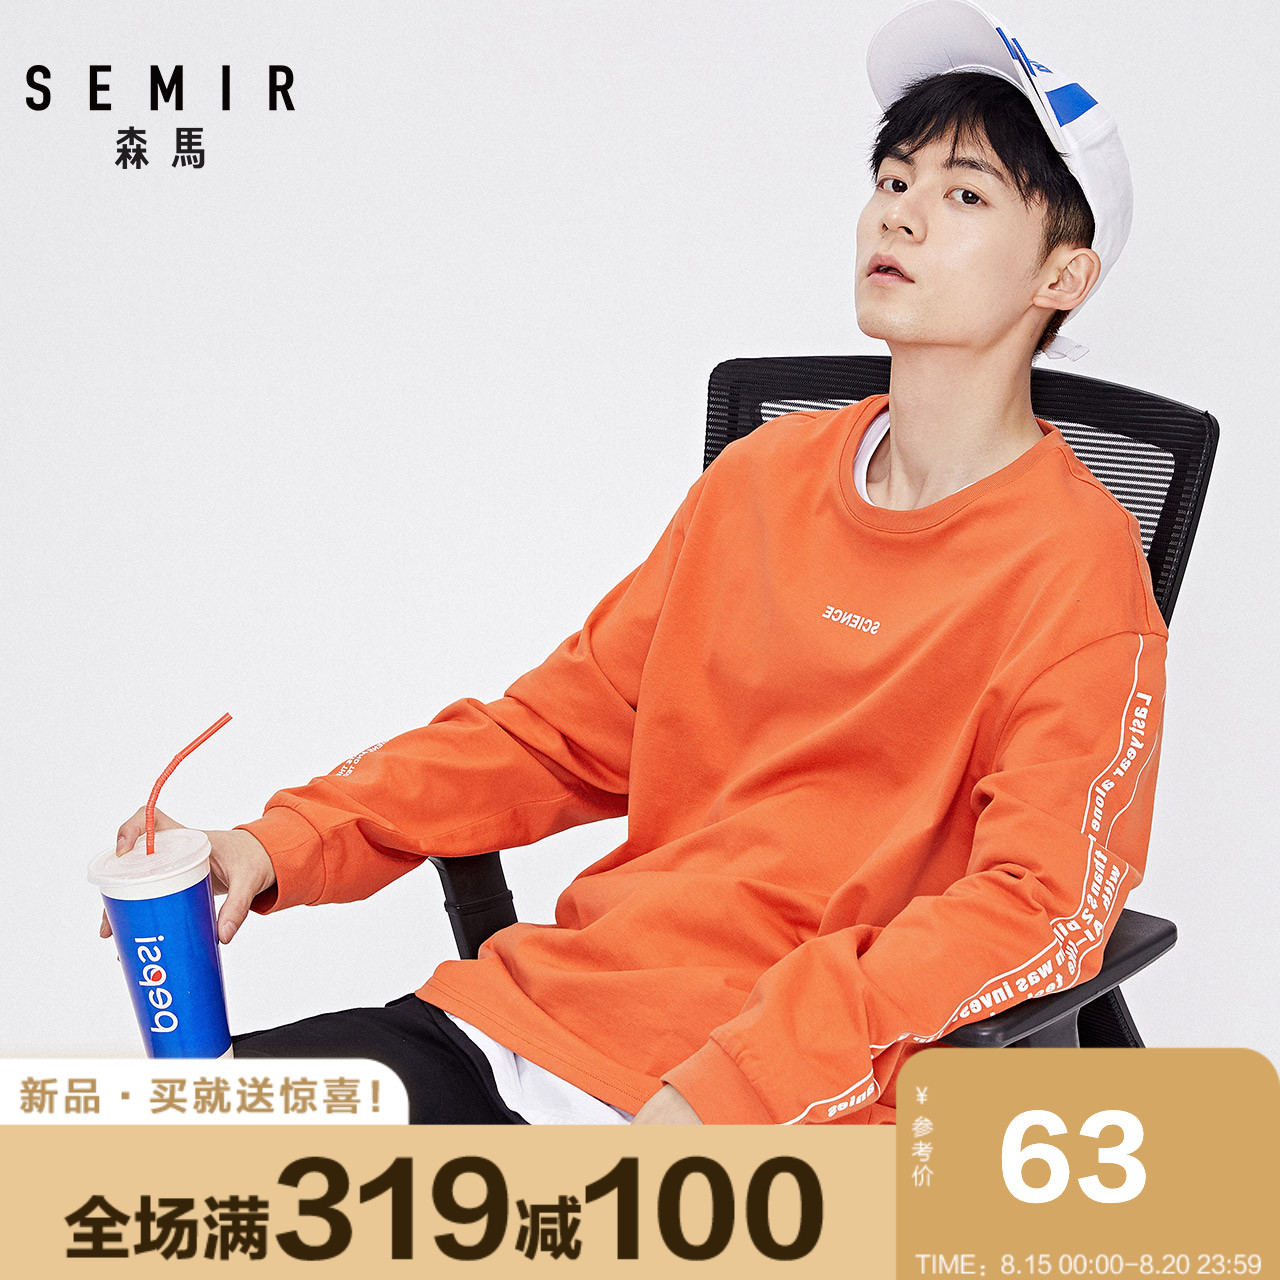 Semir T-shirt loose fall 2020 new men's trend T-shirt long sleeve cotton port style design fashion